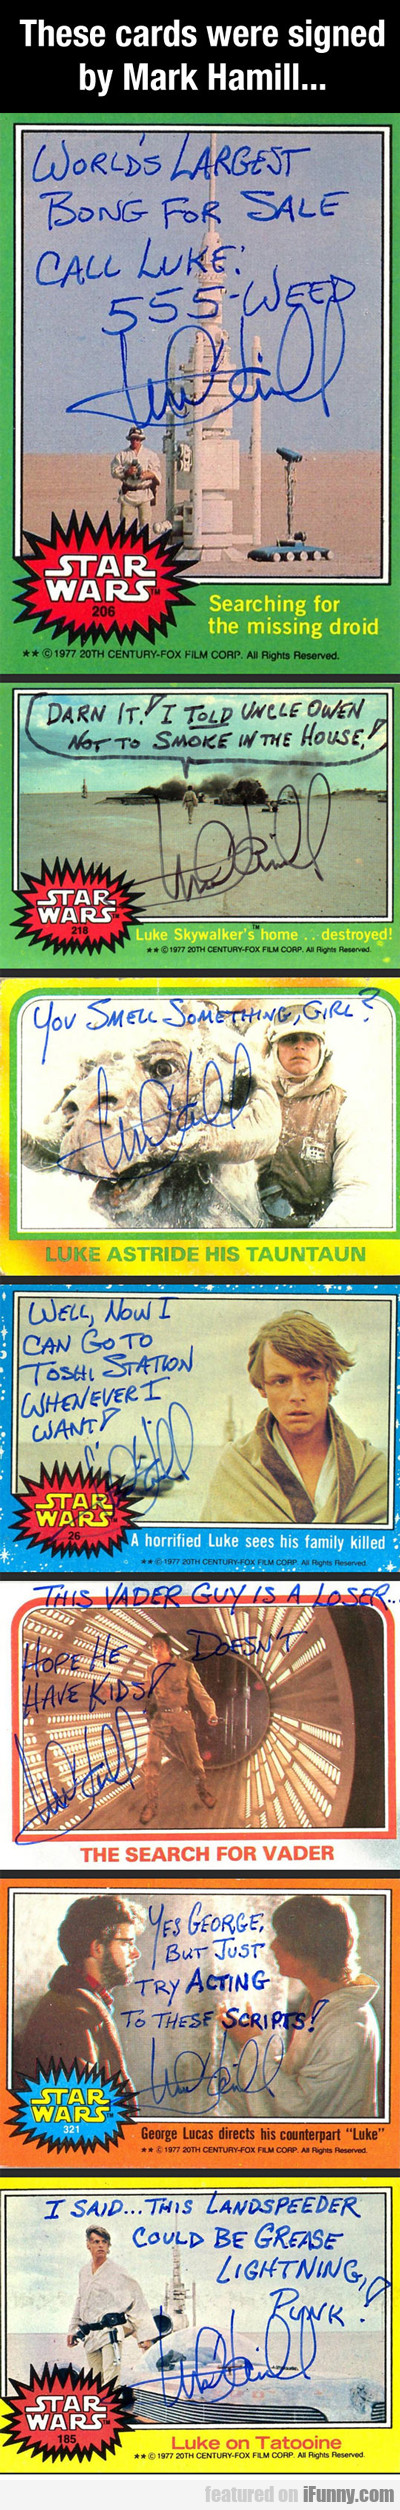 Luke Skywalker Autographs...